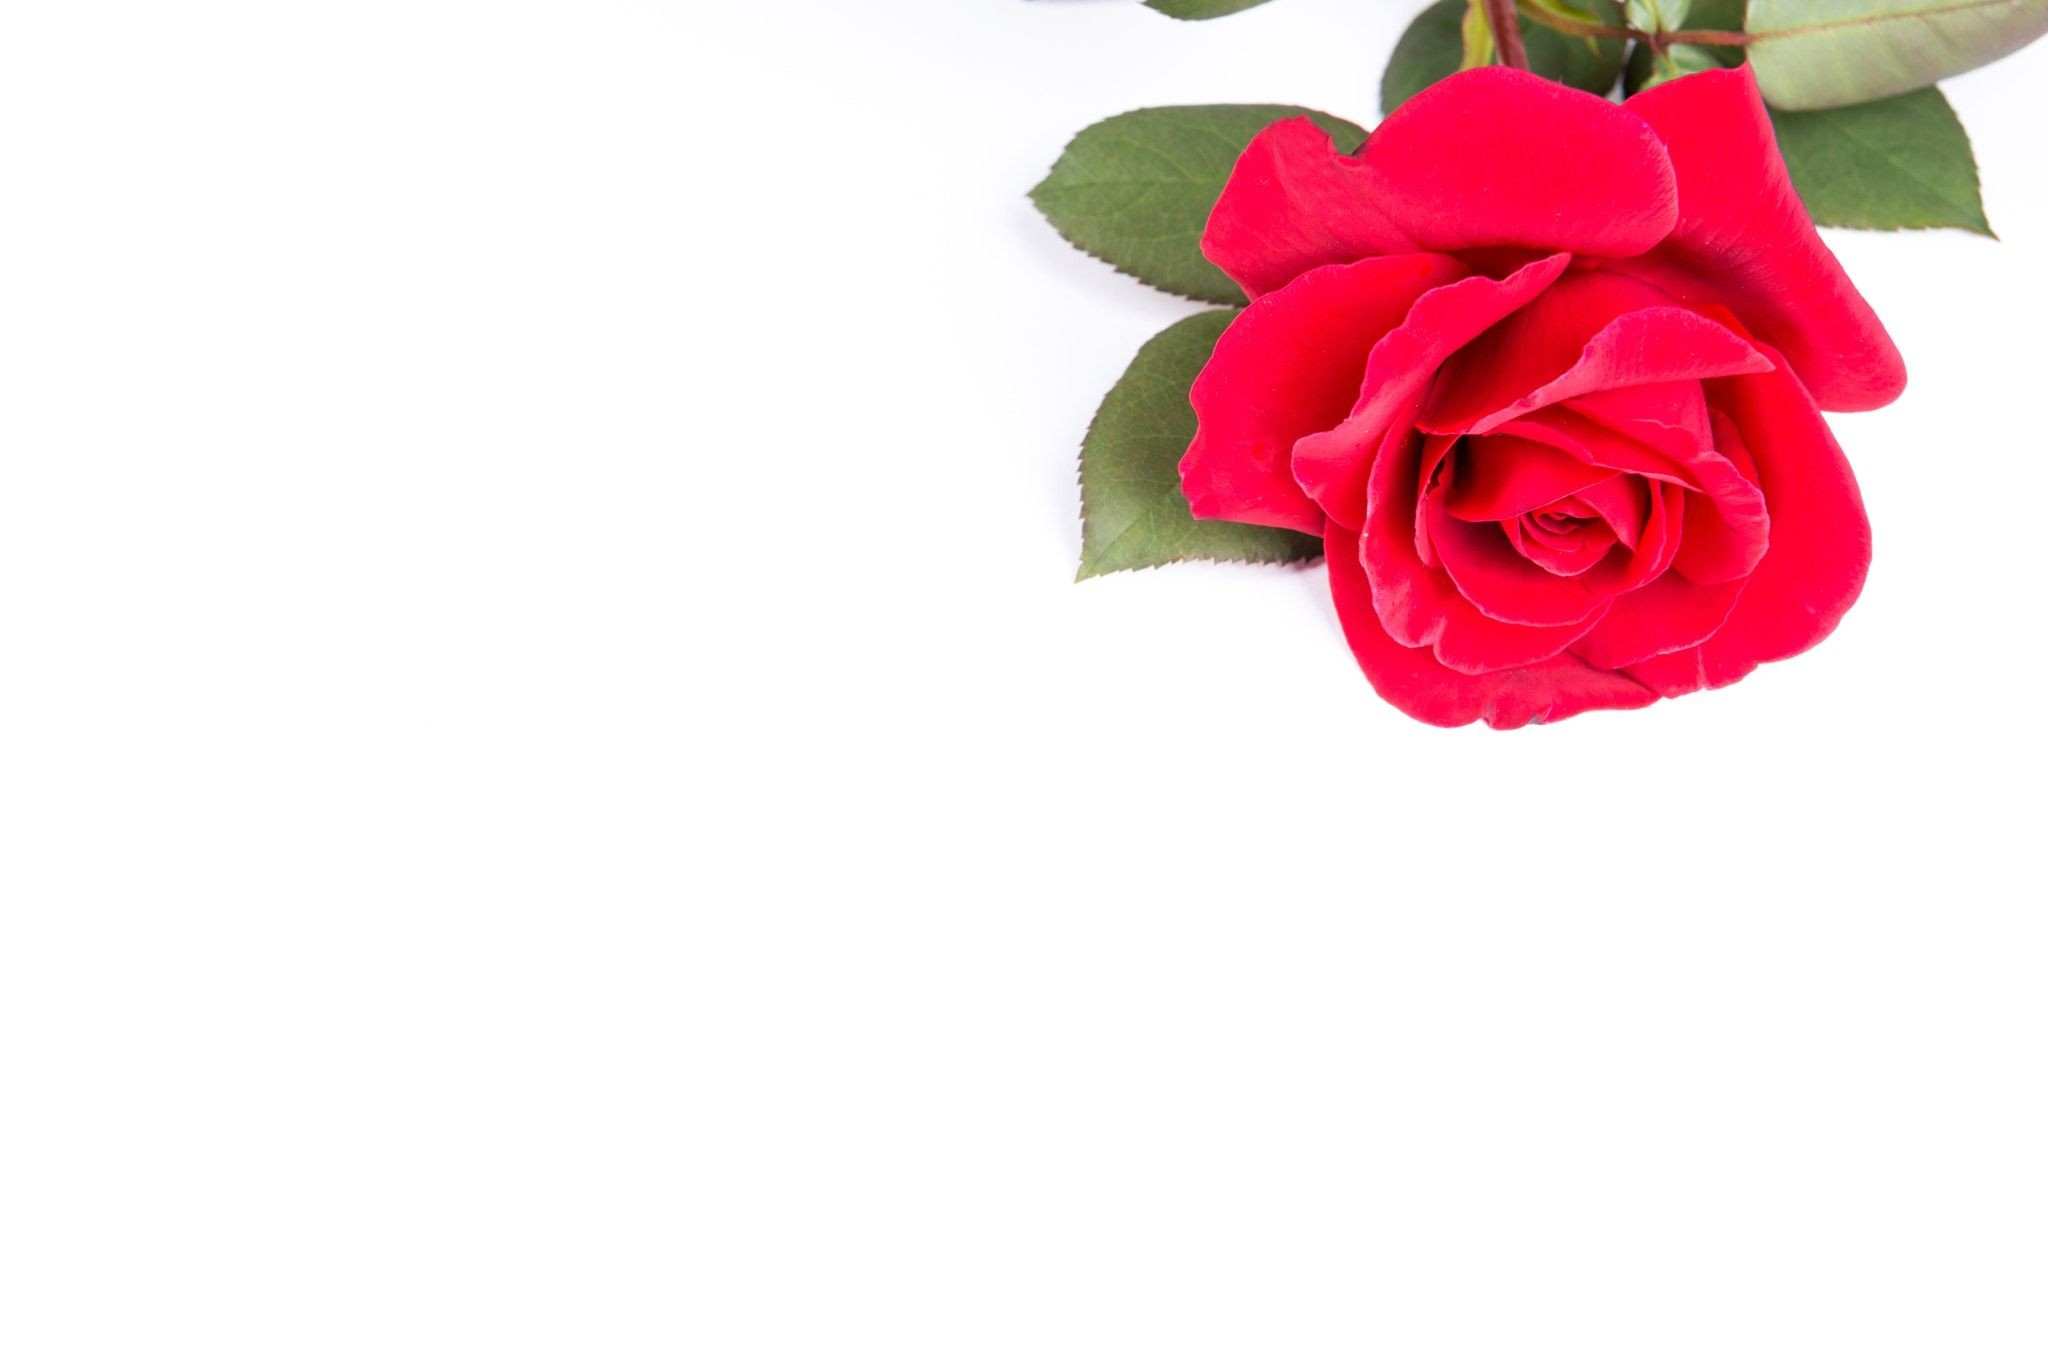 2048x1367 A single red rose from my garden on a plain white background.